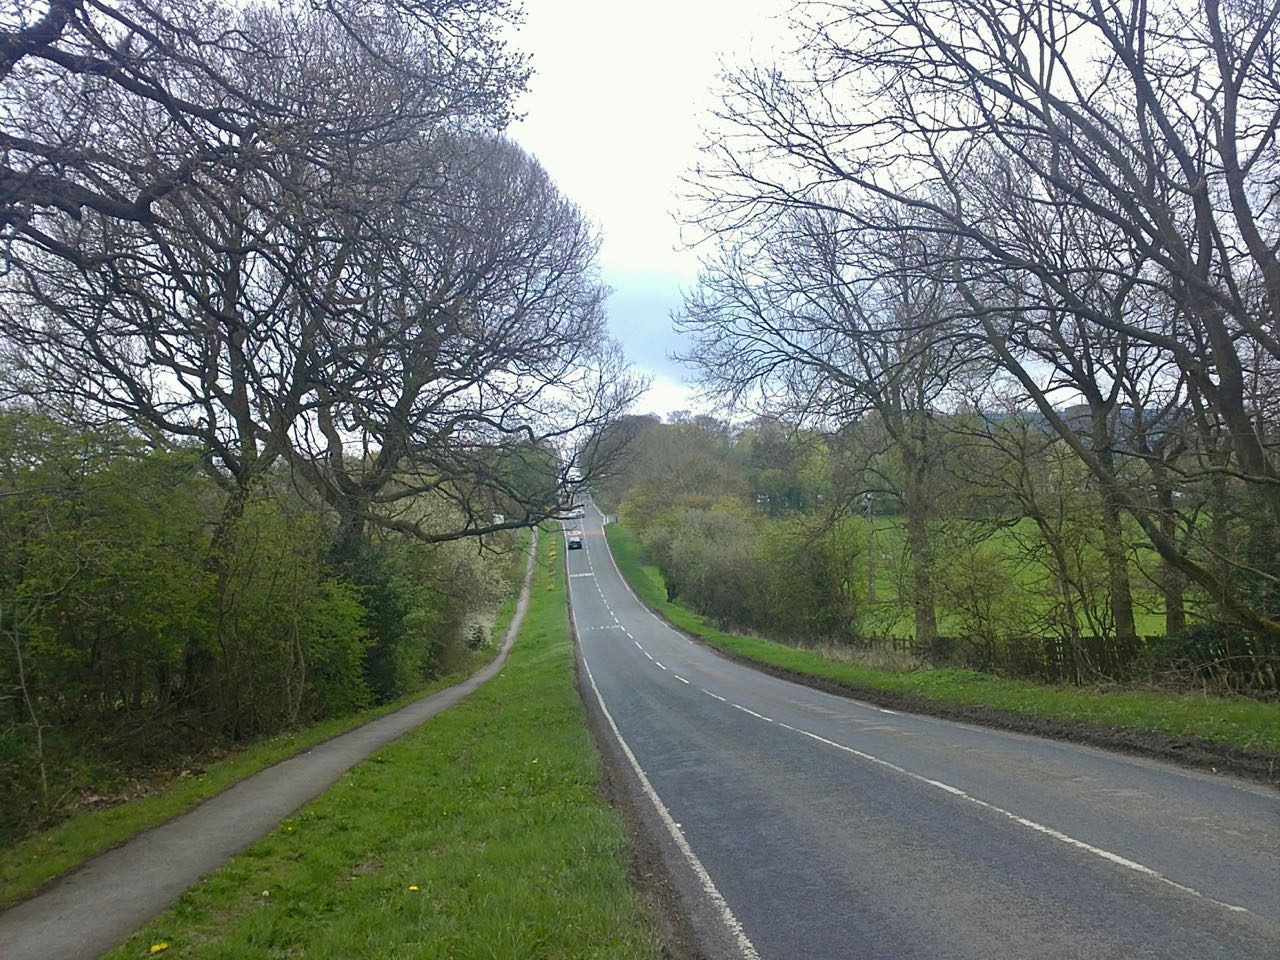 Highway near Harrogate, UK. April 2011, Sony Ericsson Vivaz U5i